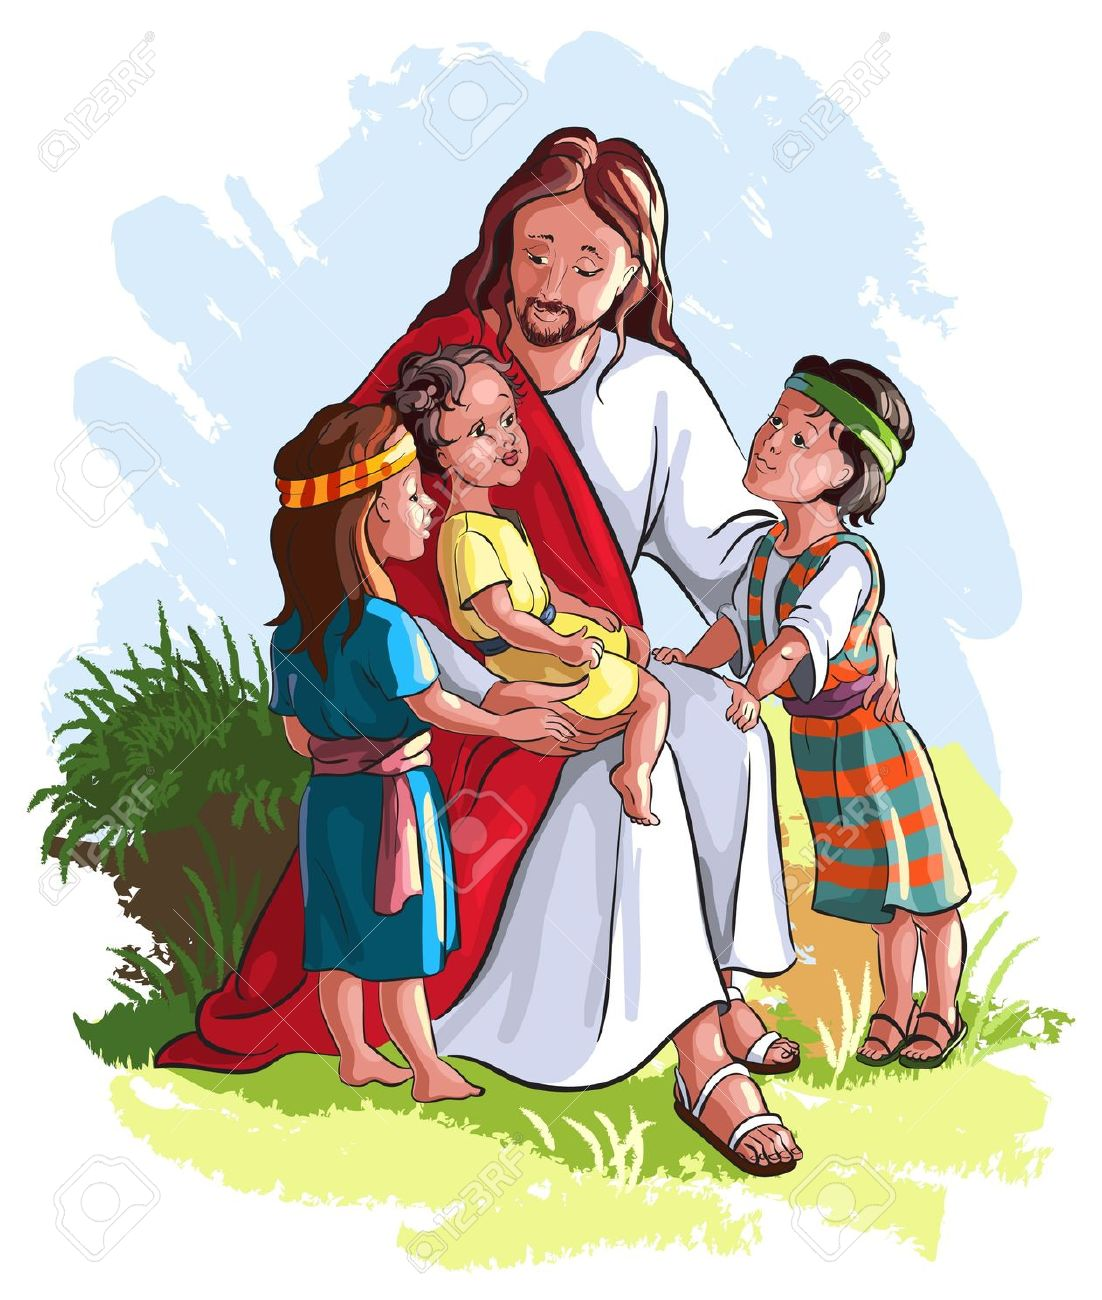 Free Christian Clipart Of Jesus And The Children.